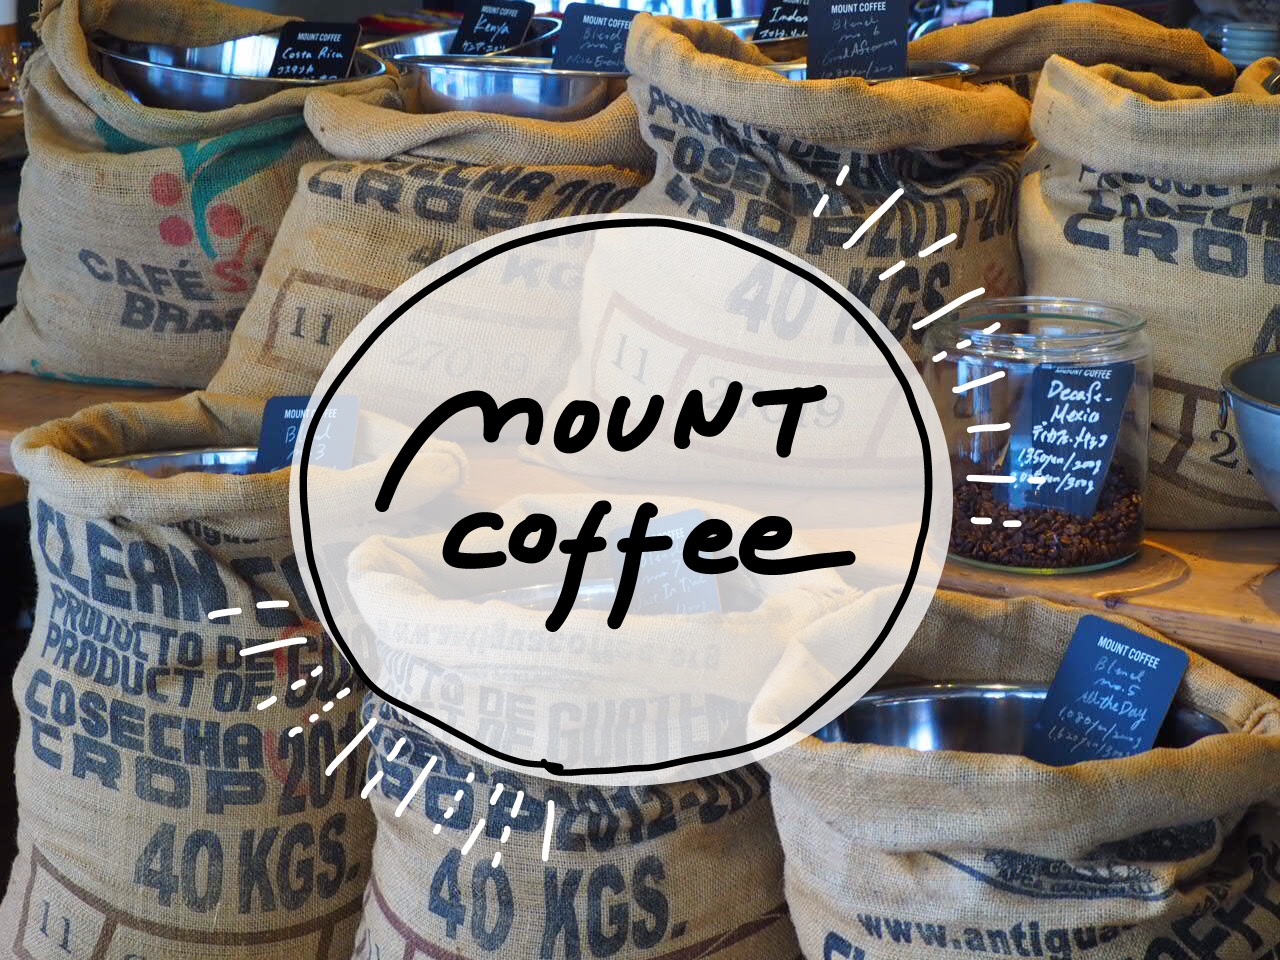 MOUNT COFFEE